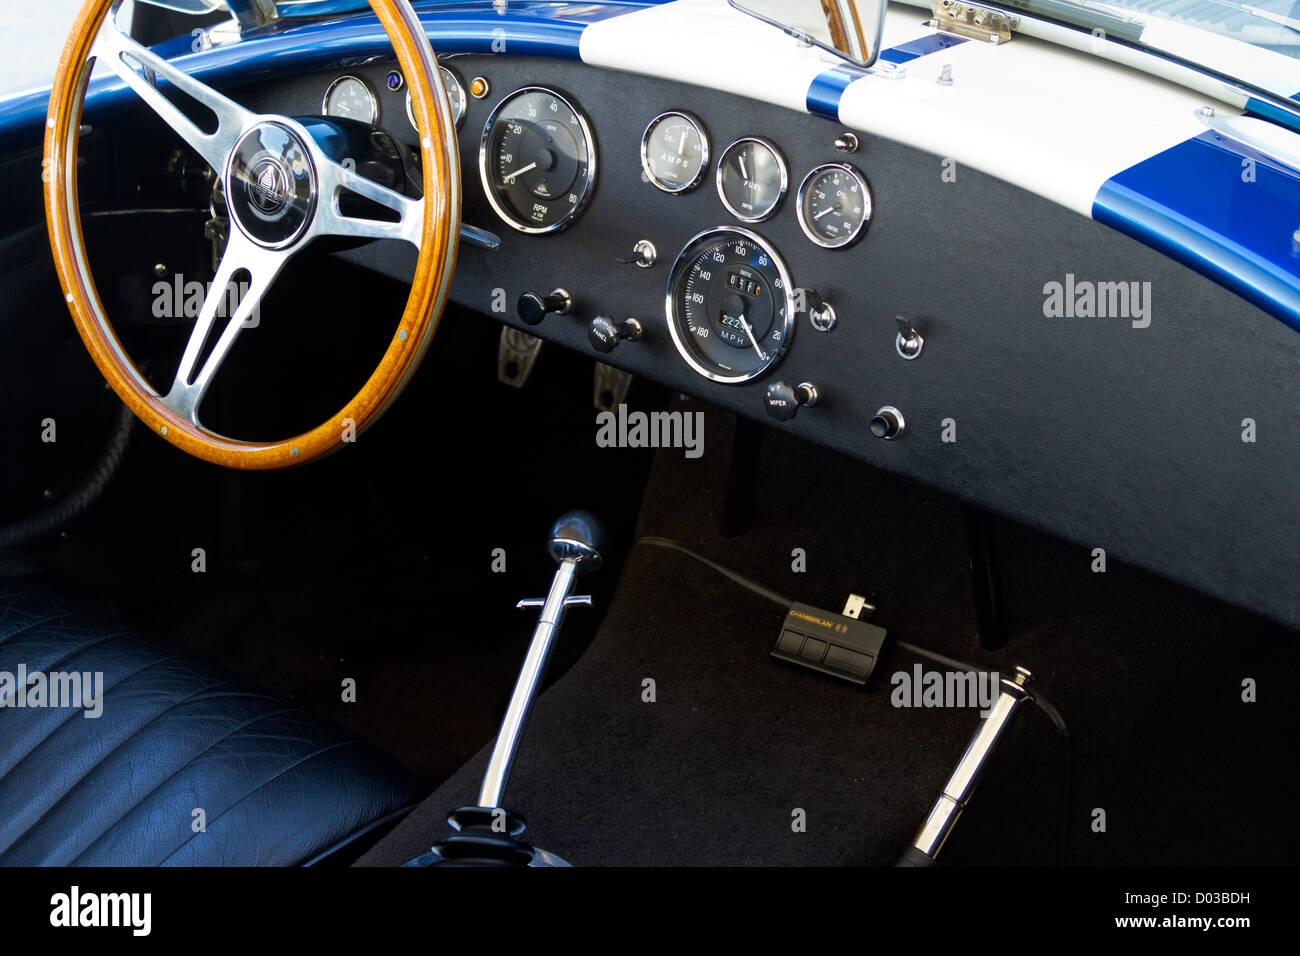 1965 Ford Shelby 427 Cobra interior detail Stock Photo